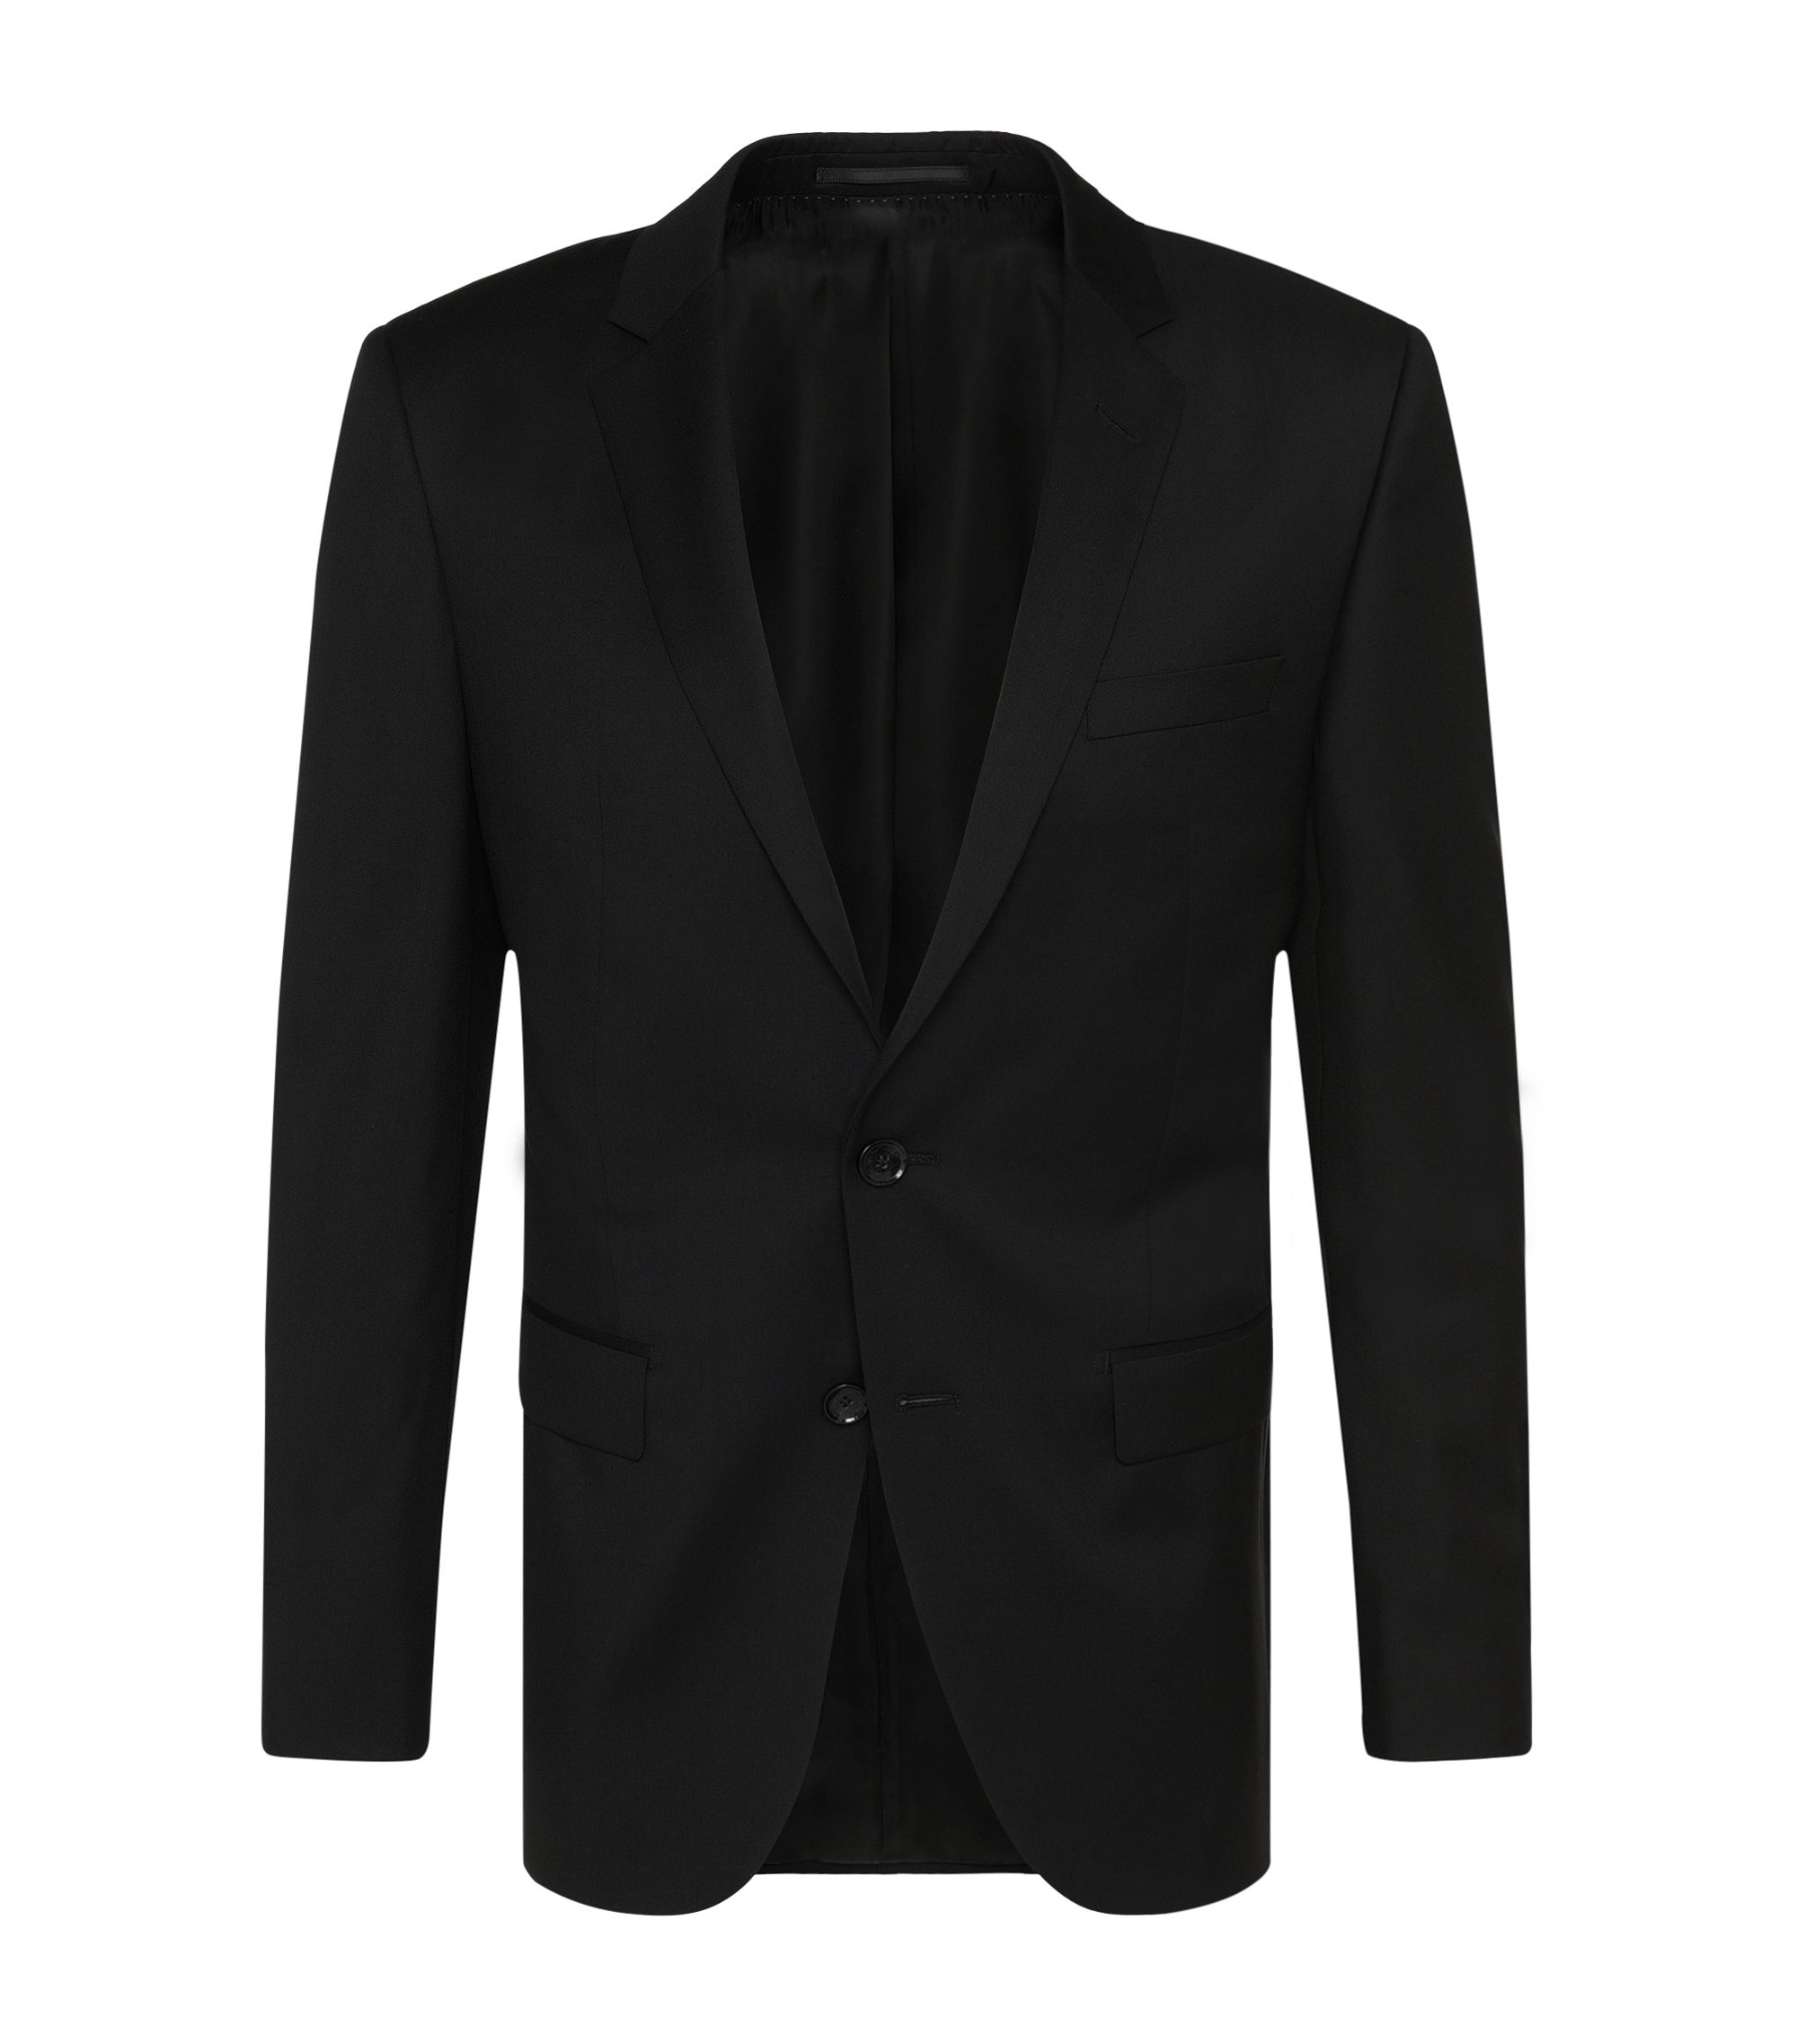 Veste de costume Slim Fit Tailored en pure laine vierge : « T-Harvers2 », Noir